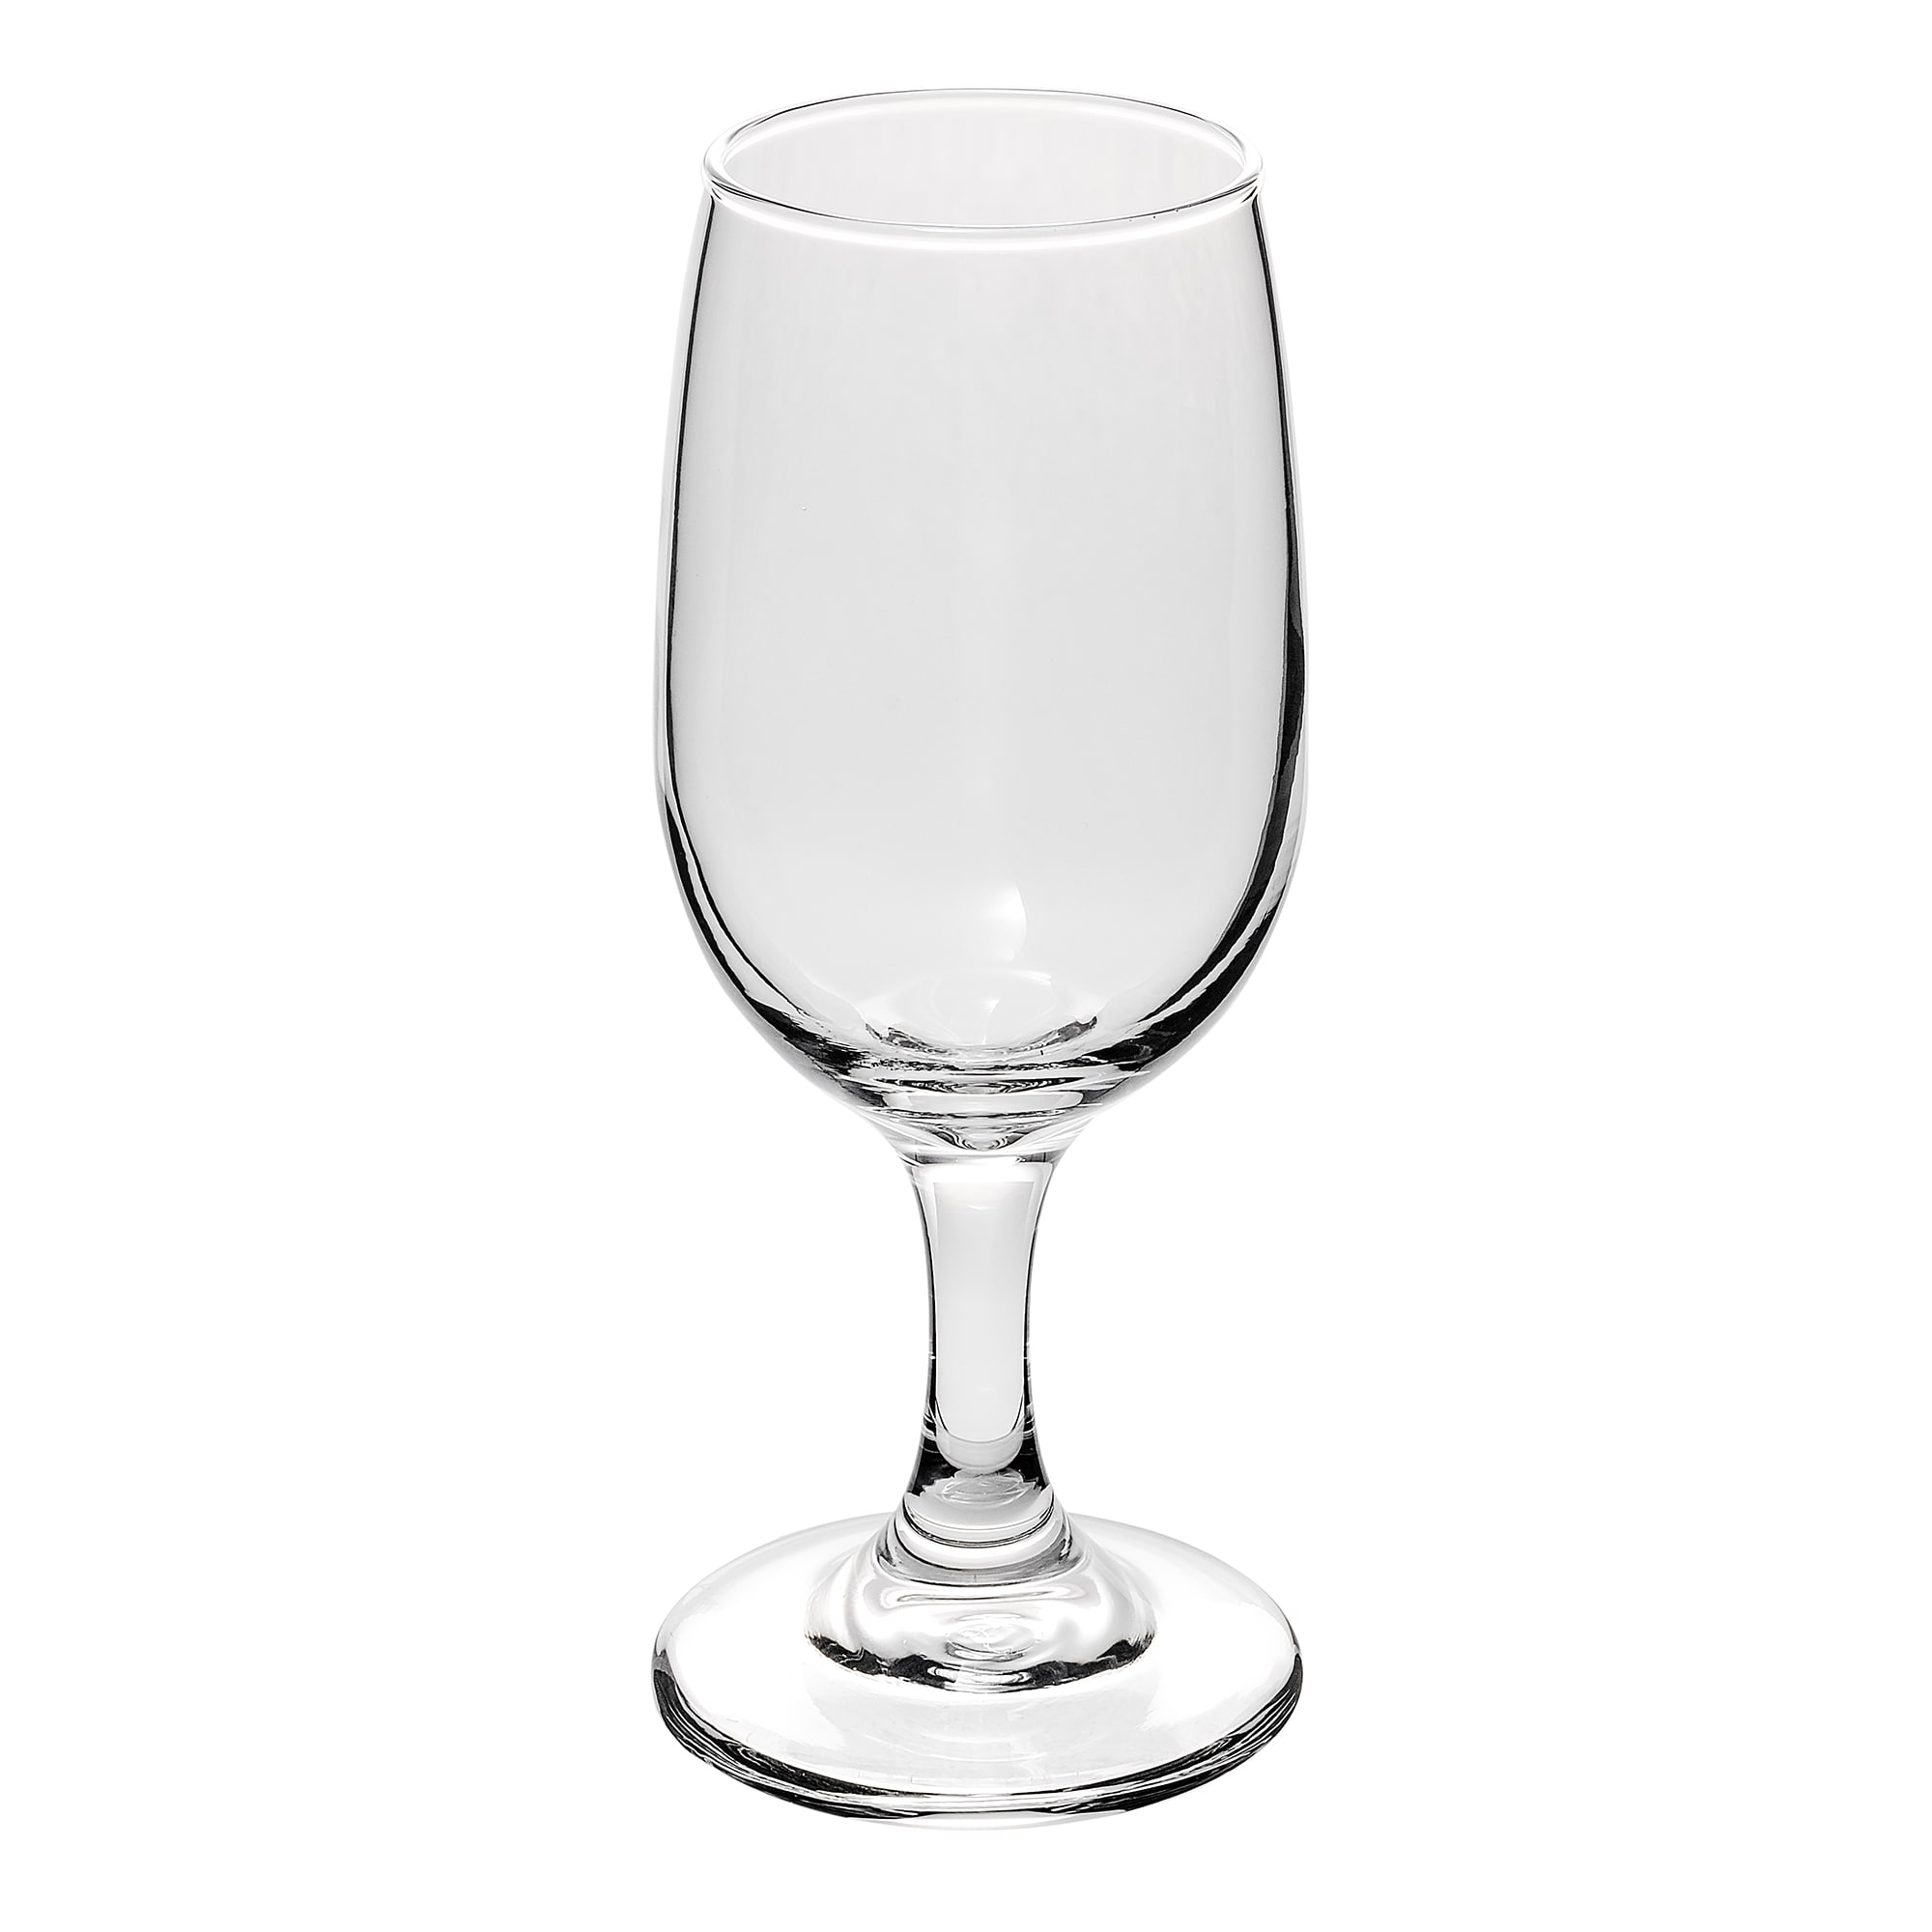 Libbey 3766 6.5-oz Embassy Wine Glass - Safedge Rim & Foot Guarantee